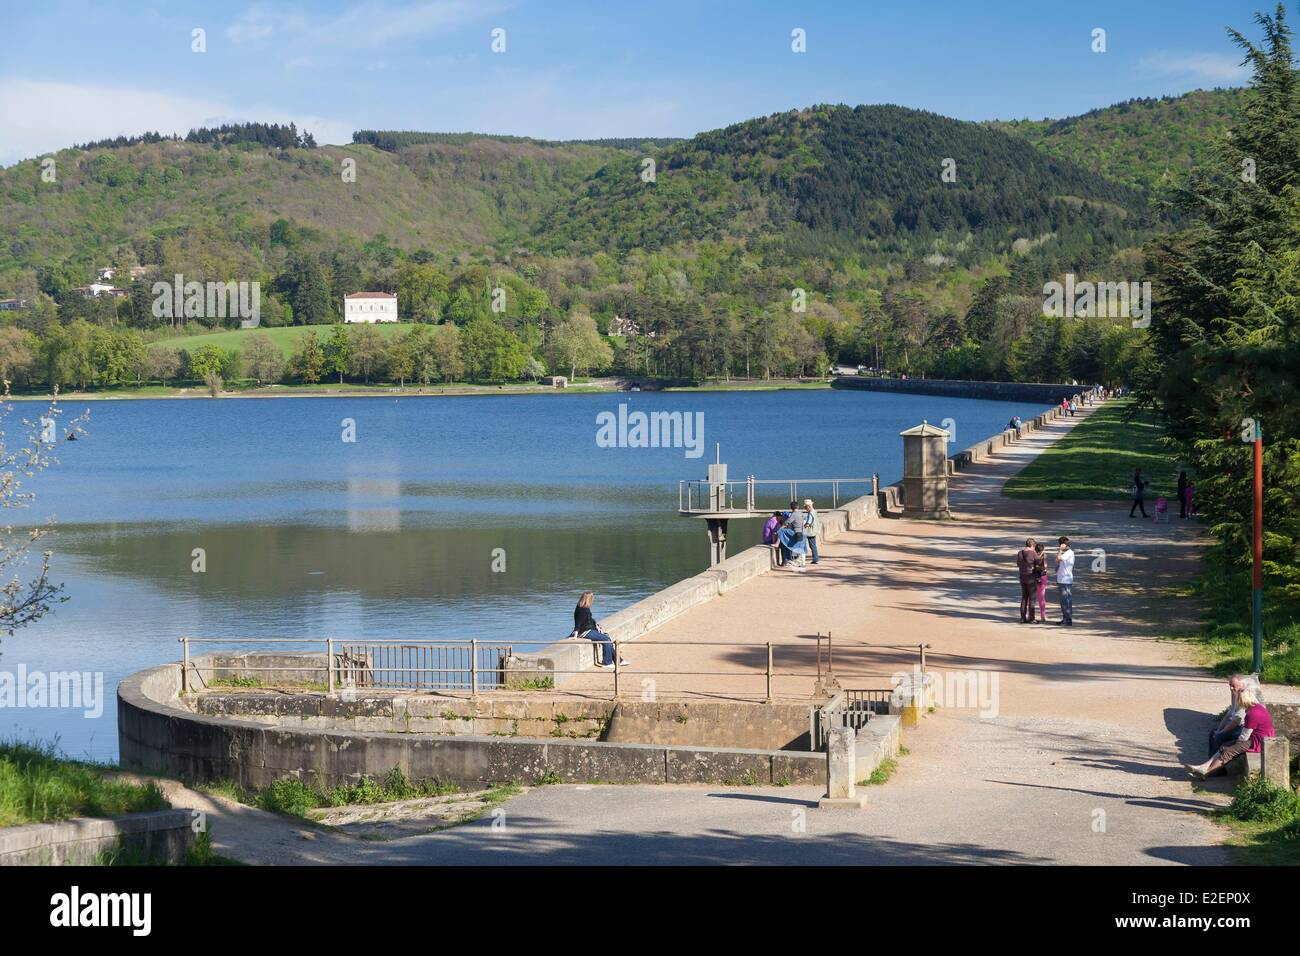 France, Haute Garonne, Revel, the retention dam and Saint Ferreol lake, listed as World Heritage by UNESCO - Stock Image